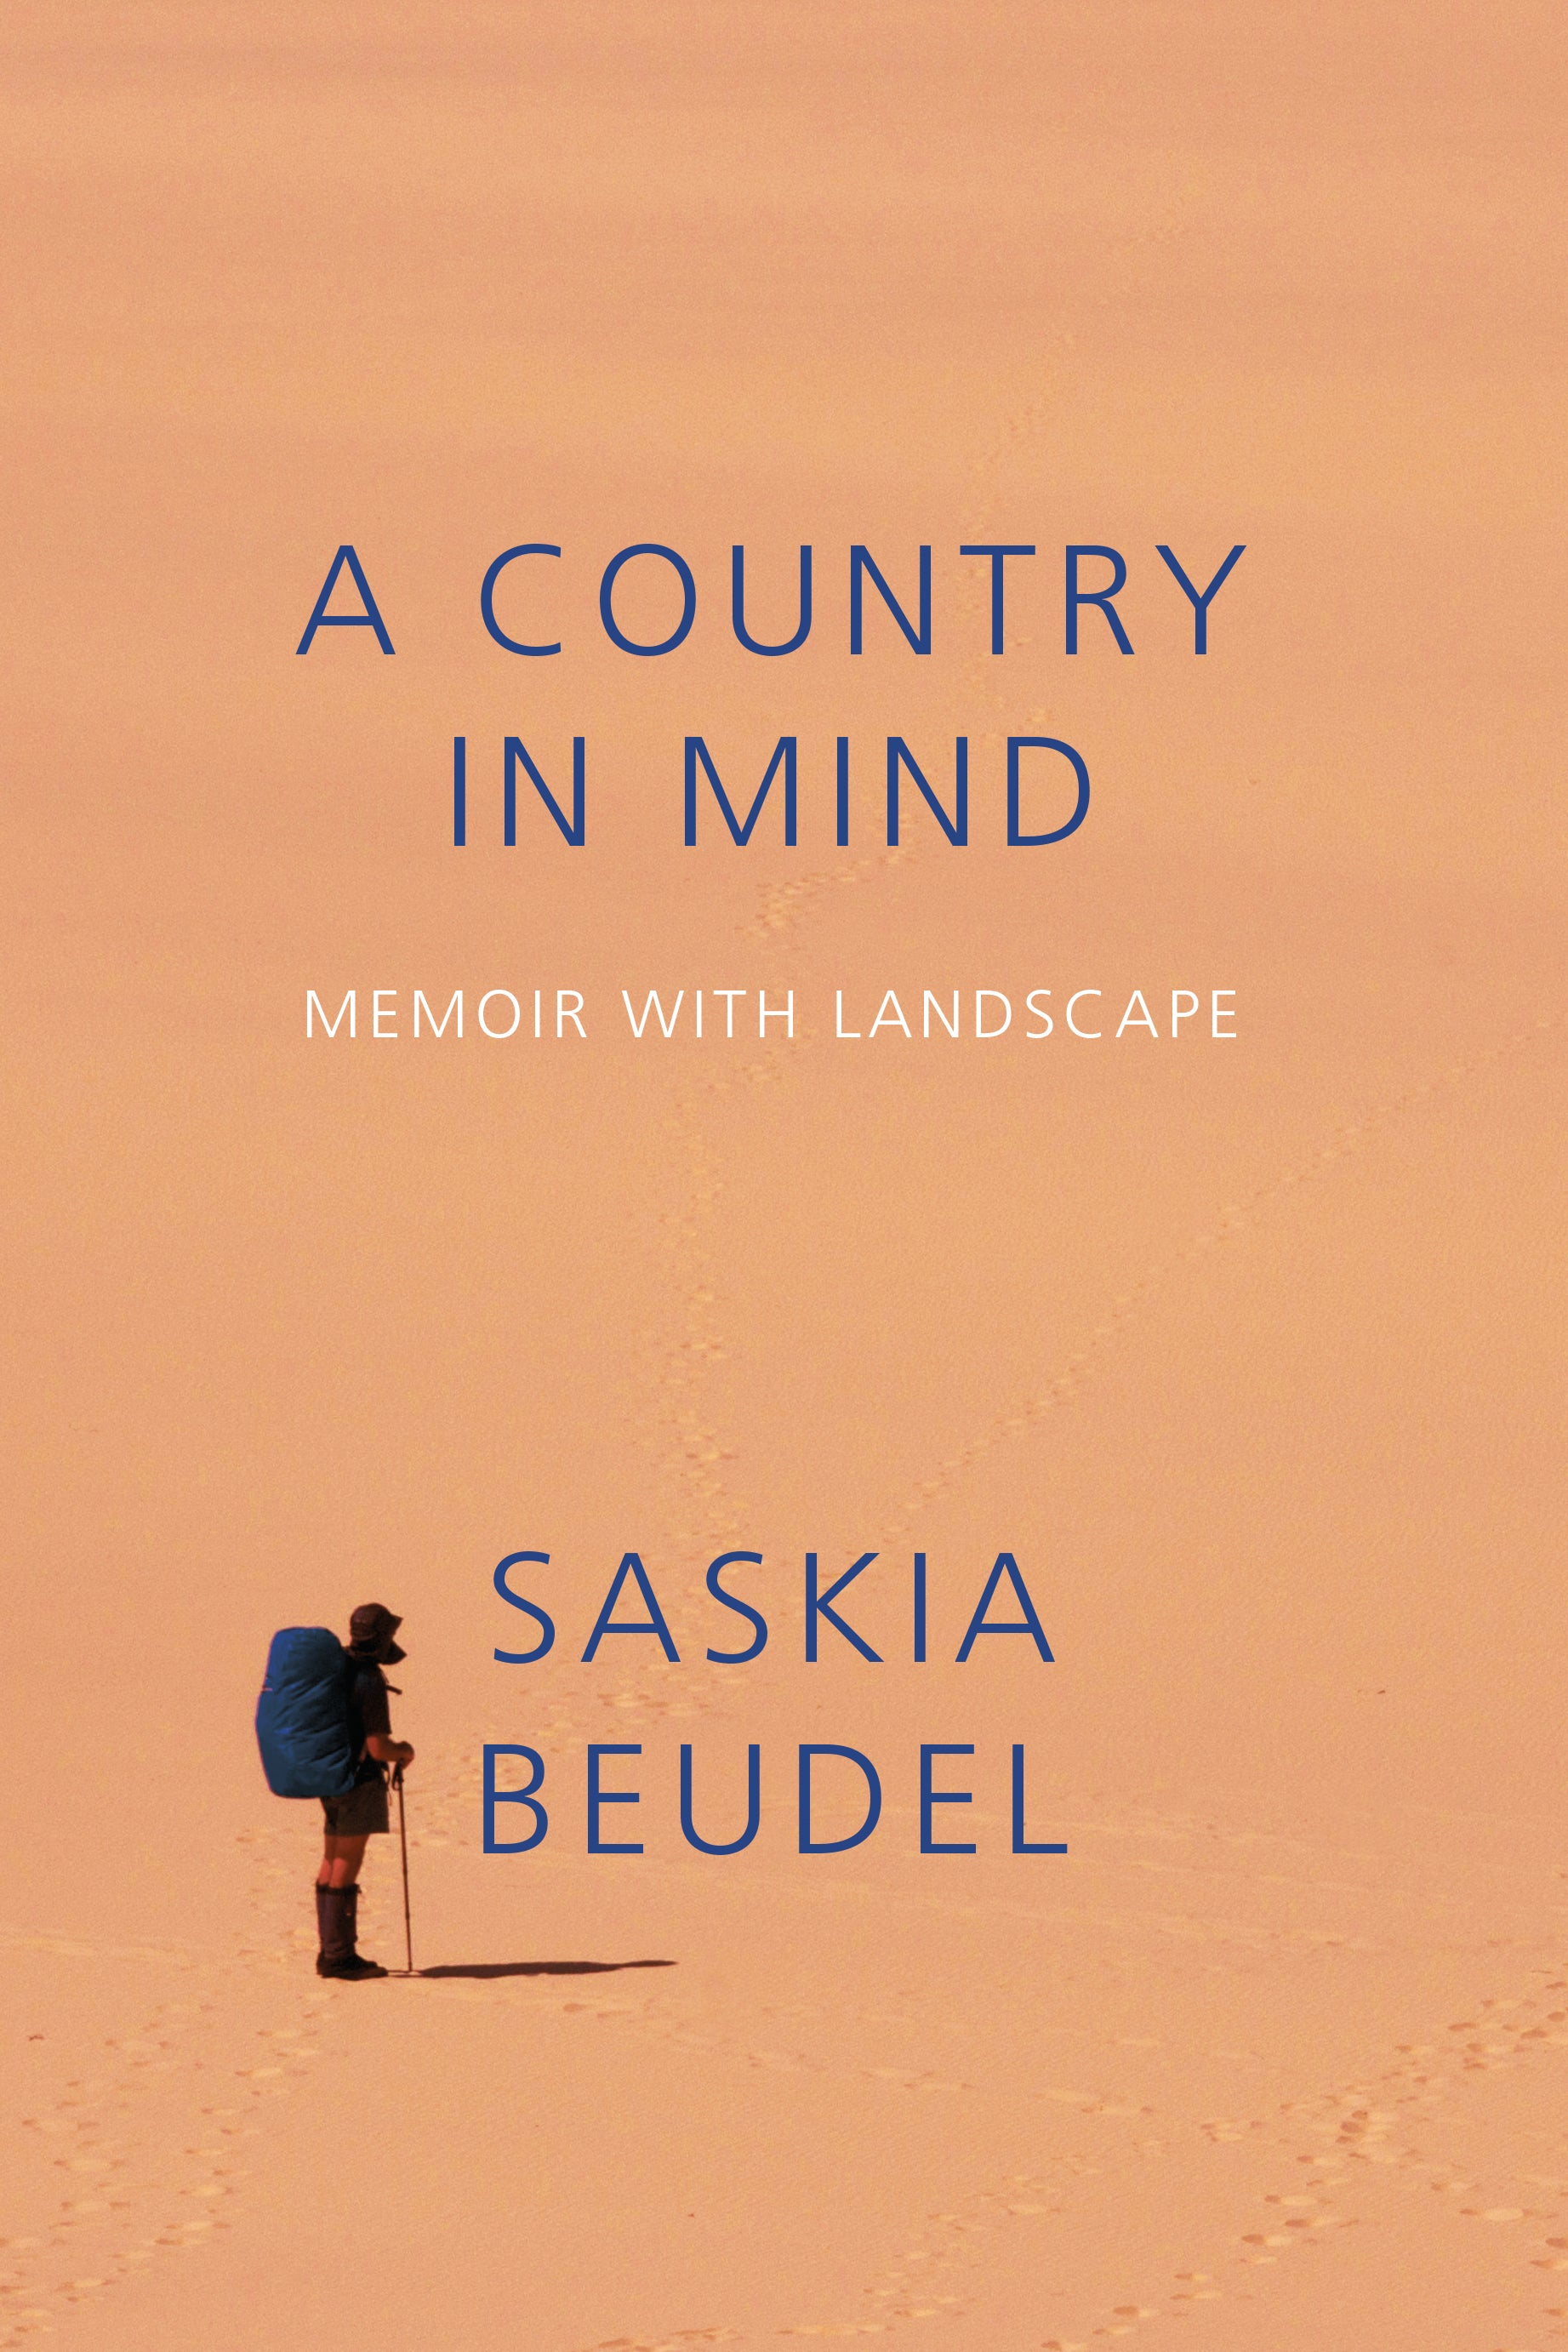 A country in mind memoir with landscape uwa publishing high res cover image fandeluxe Choice Image